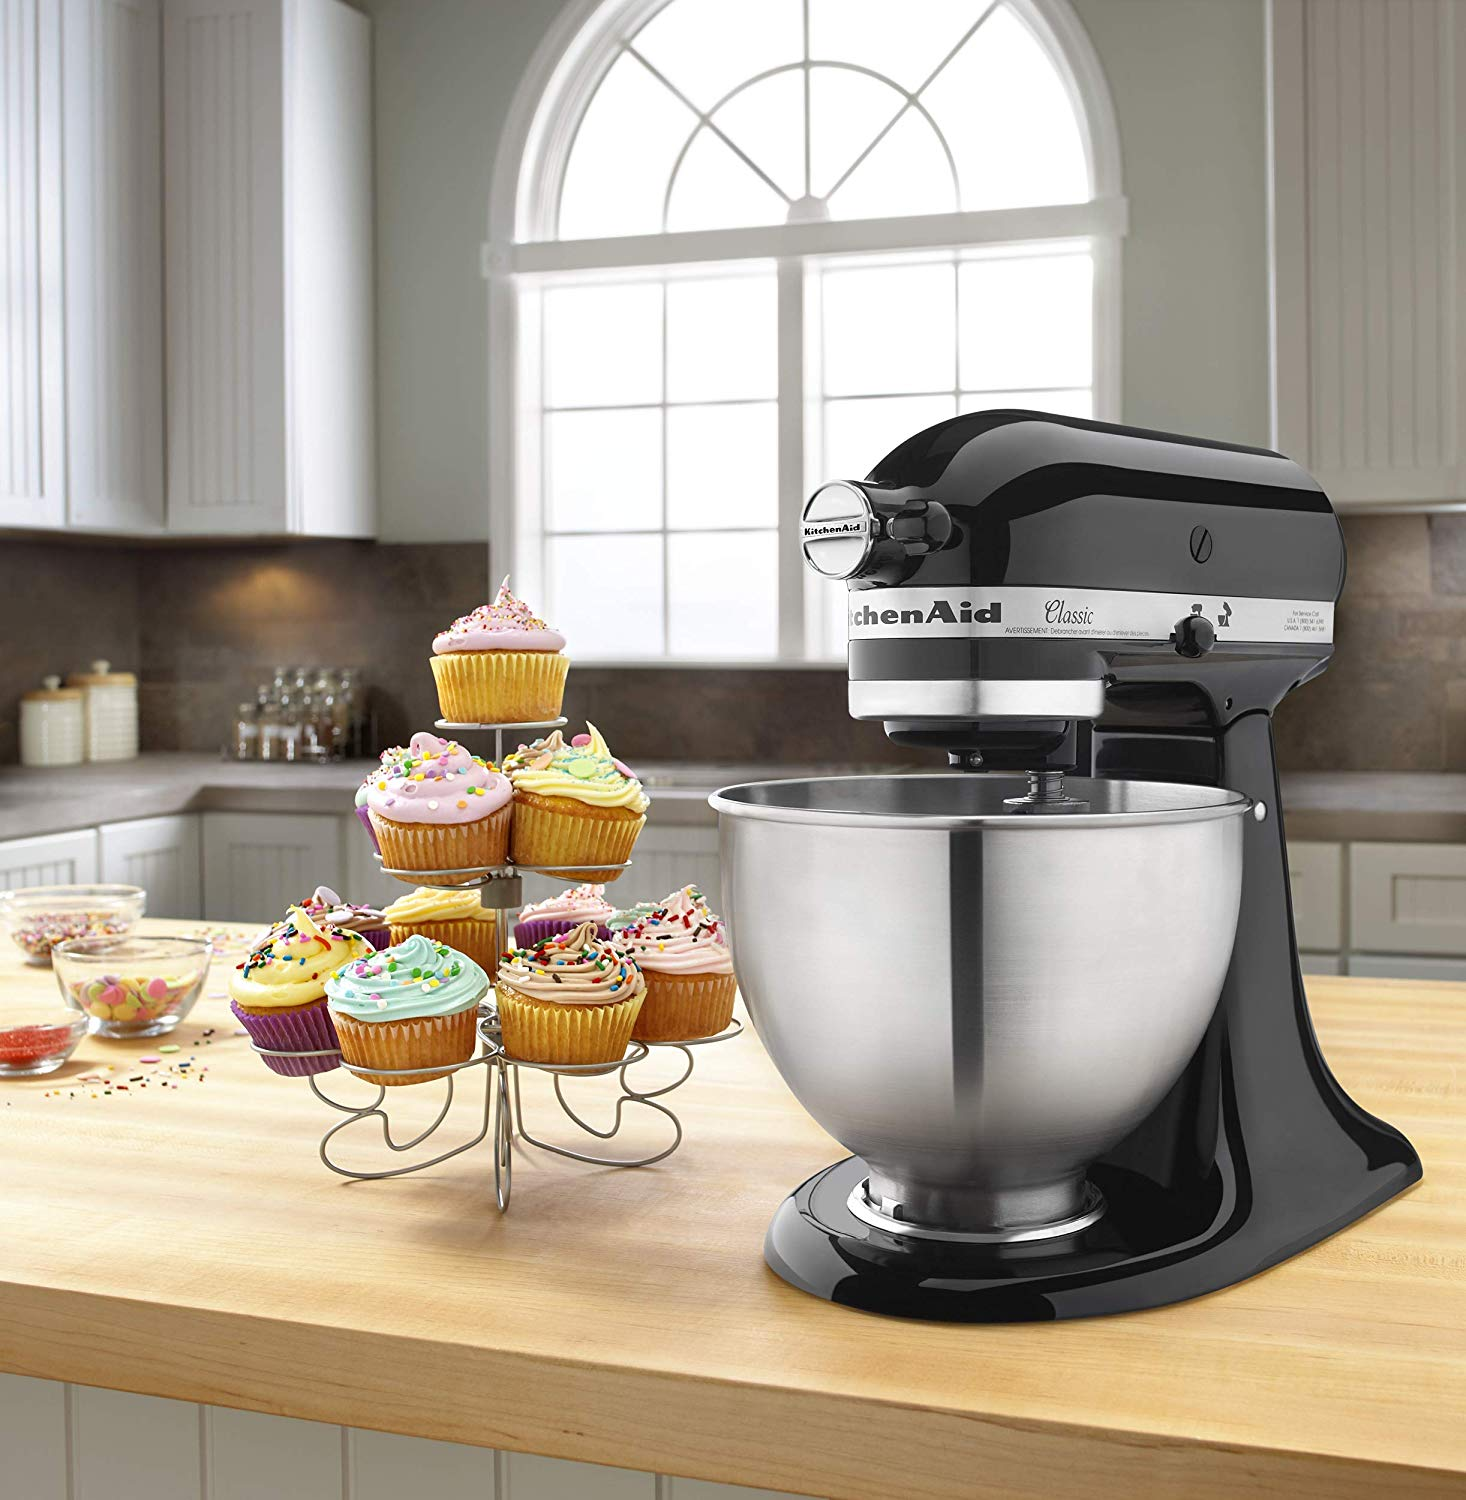 Top 10 Best Kitchen Aid Stand Mixers In 2019